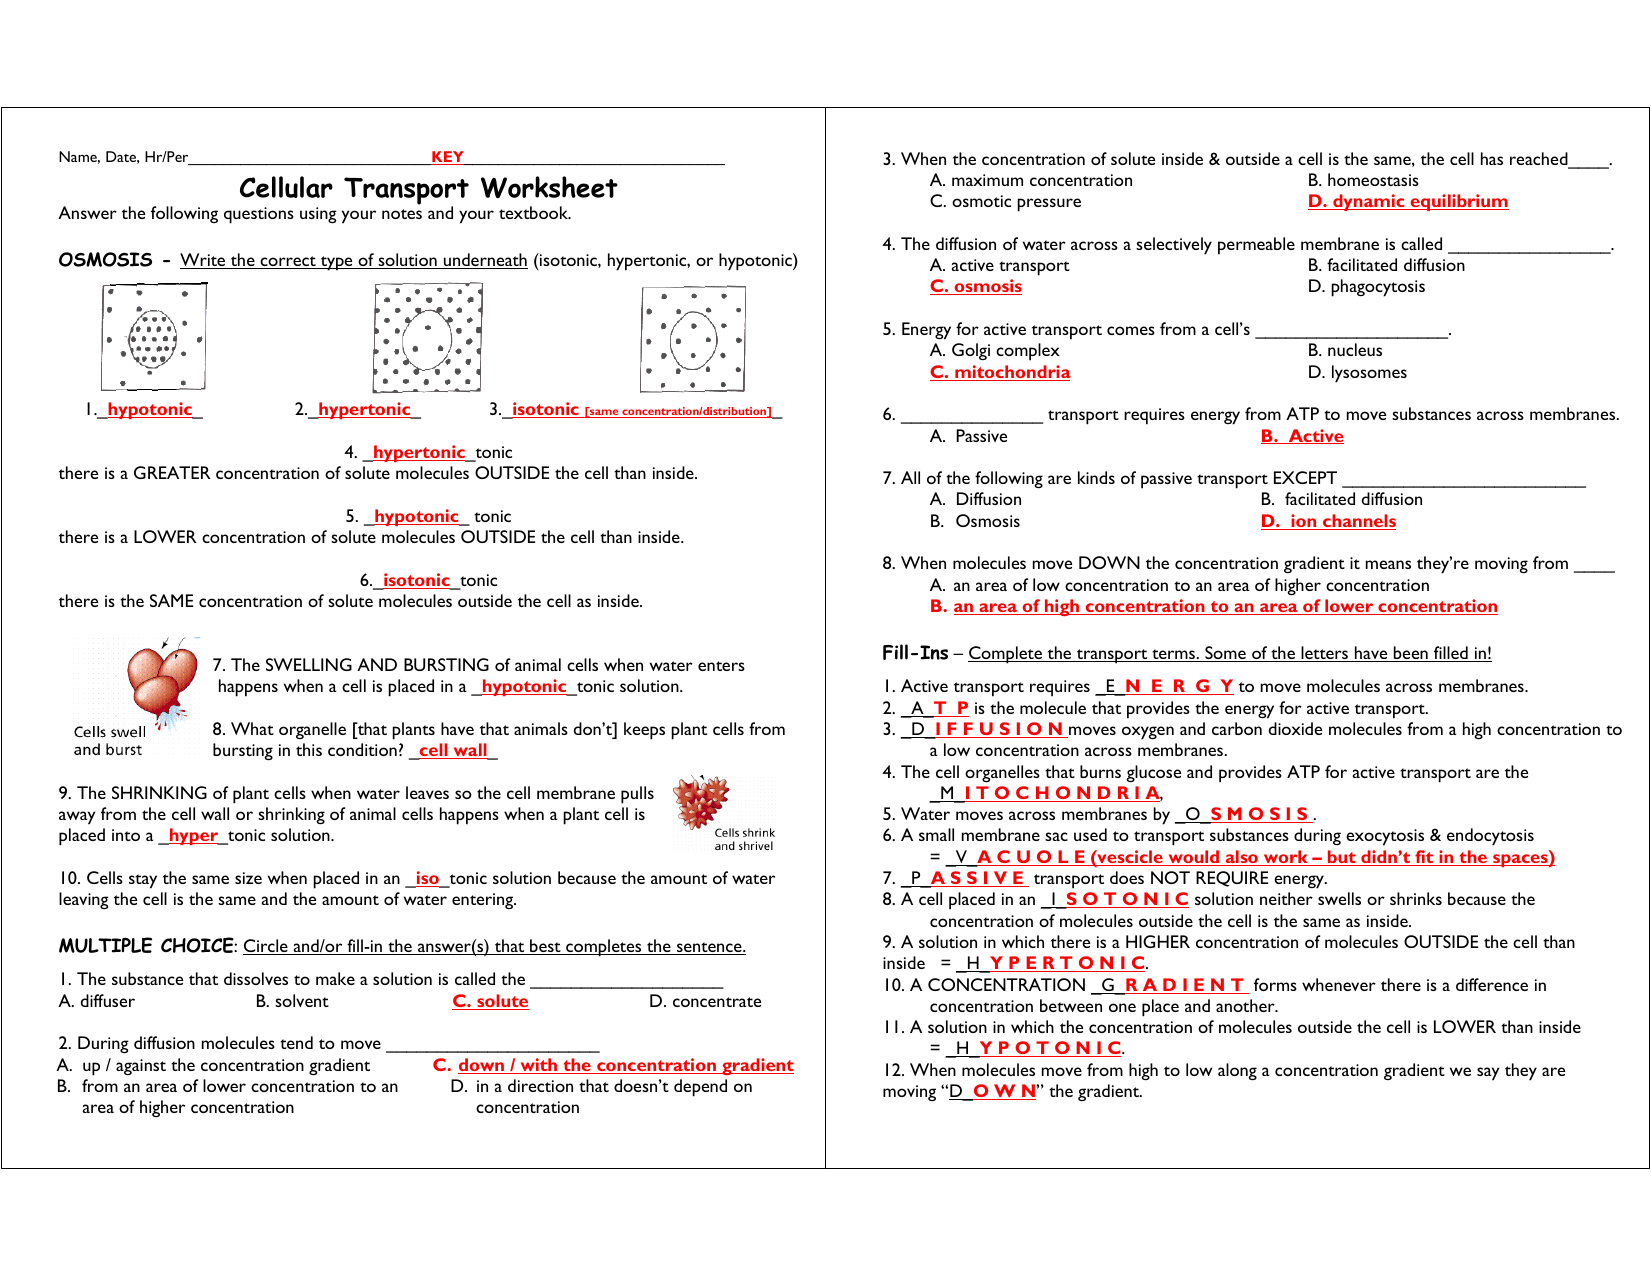 Worksheet Cellular Transport Worksheet Answer Key Grass